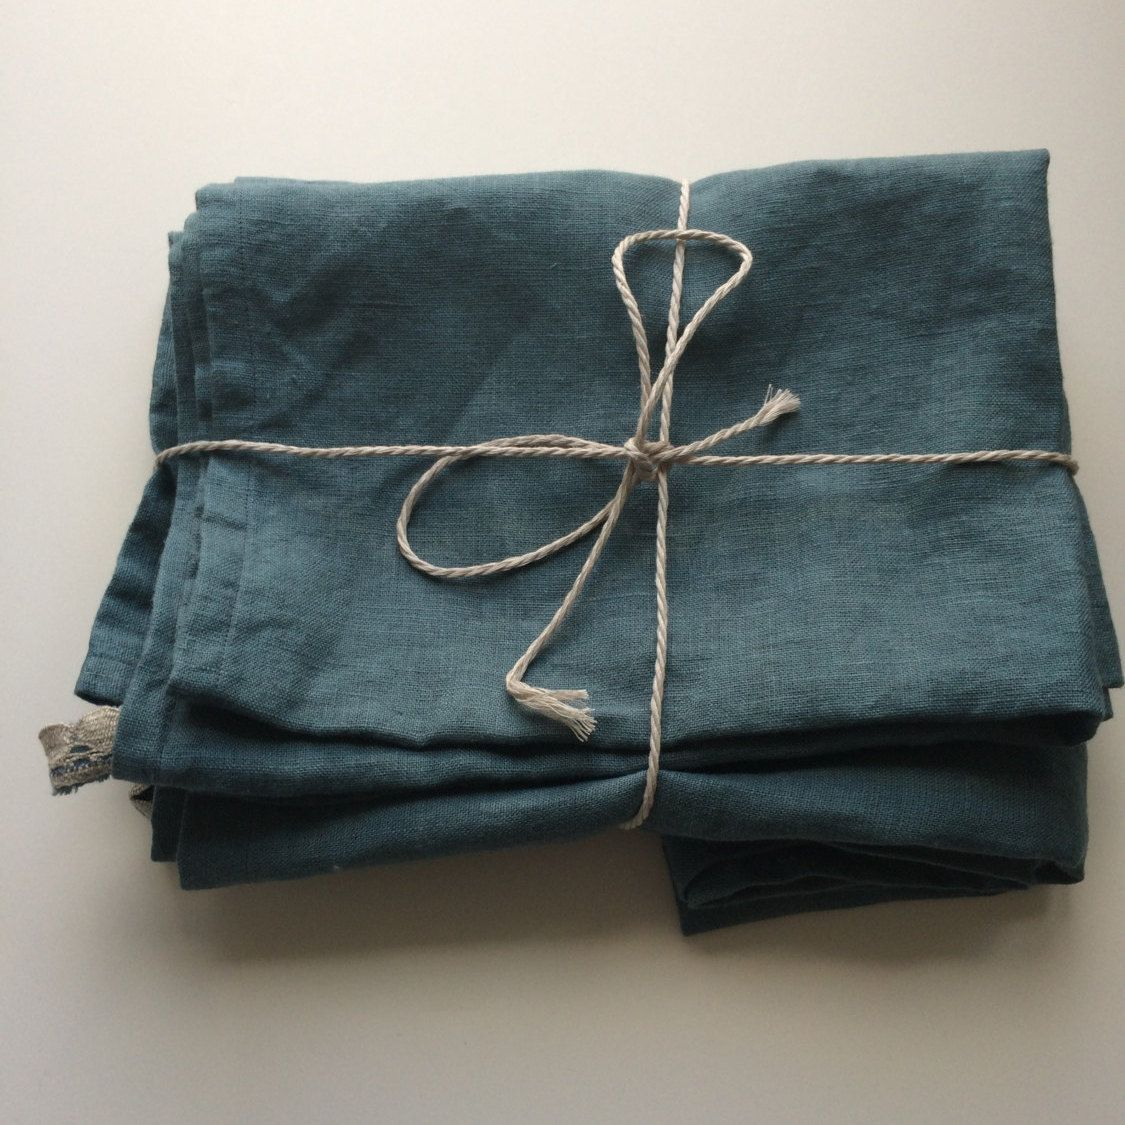 Linen Bathroom Towels, Bath and Face Towels, Stonewashed Bath and Face Towels, Blue Green Pastel Color, Towels with Lace Loop, Stone Washed by Linenstars on Etsy